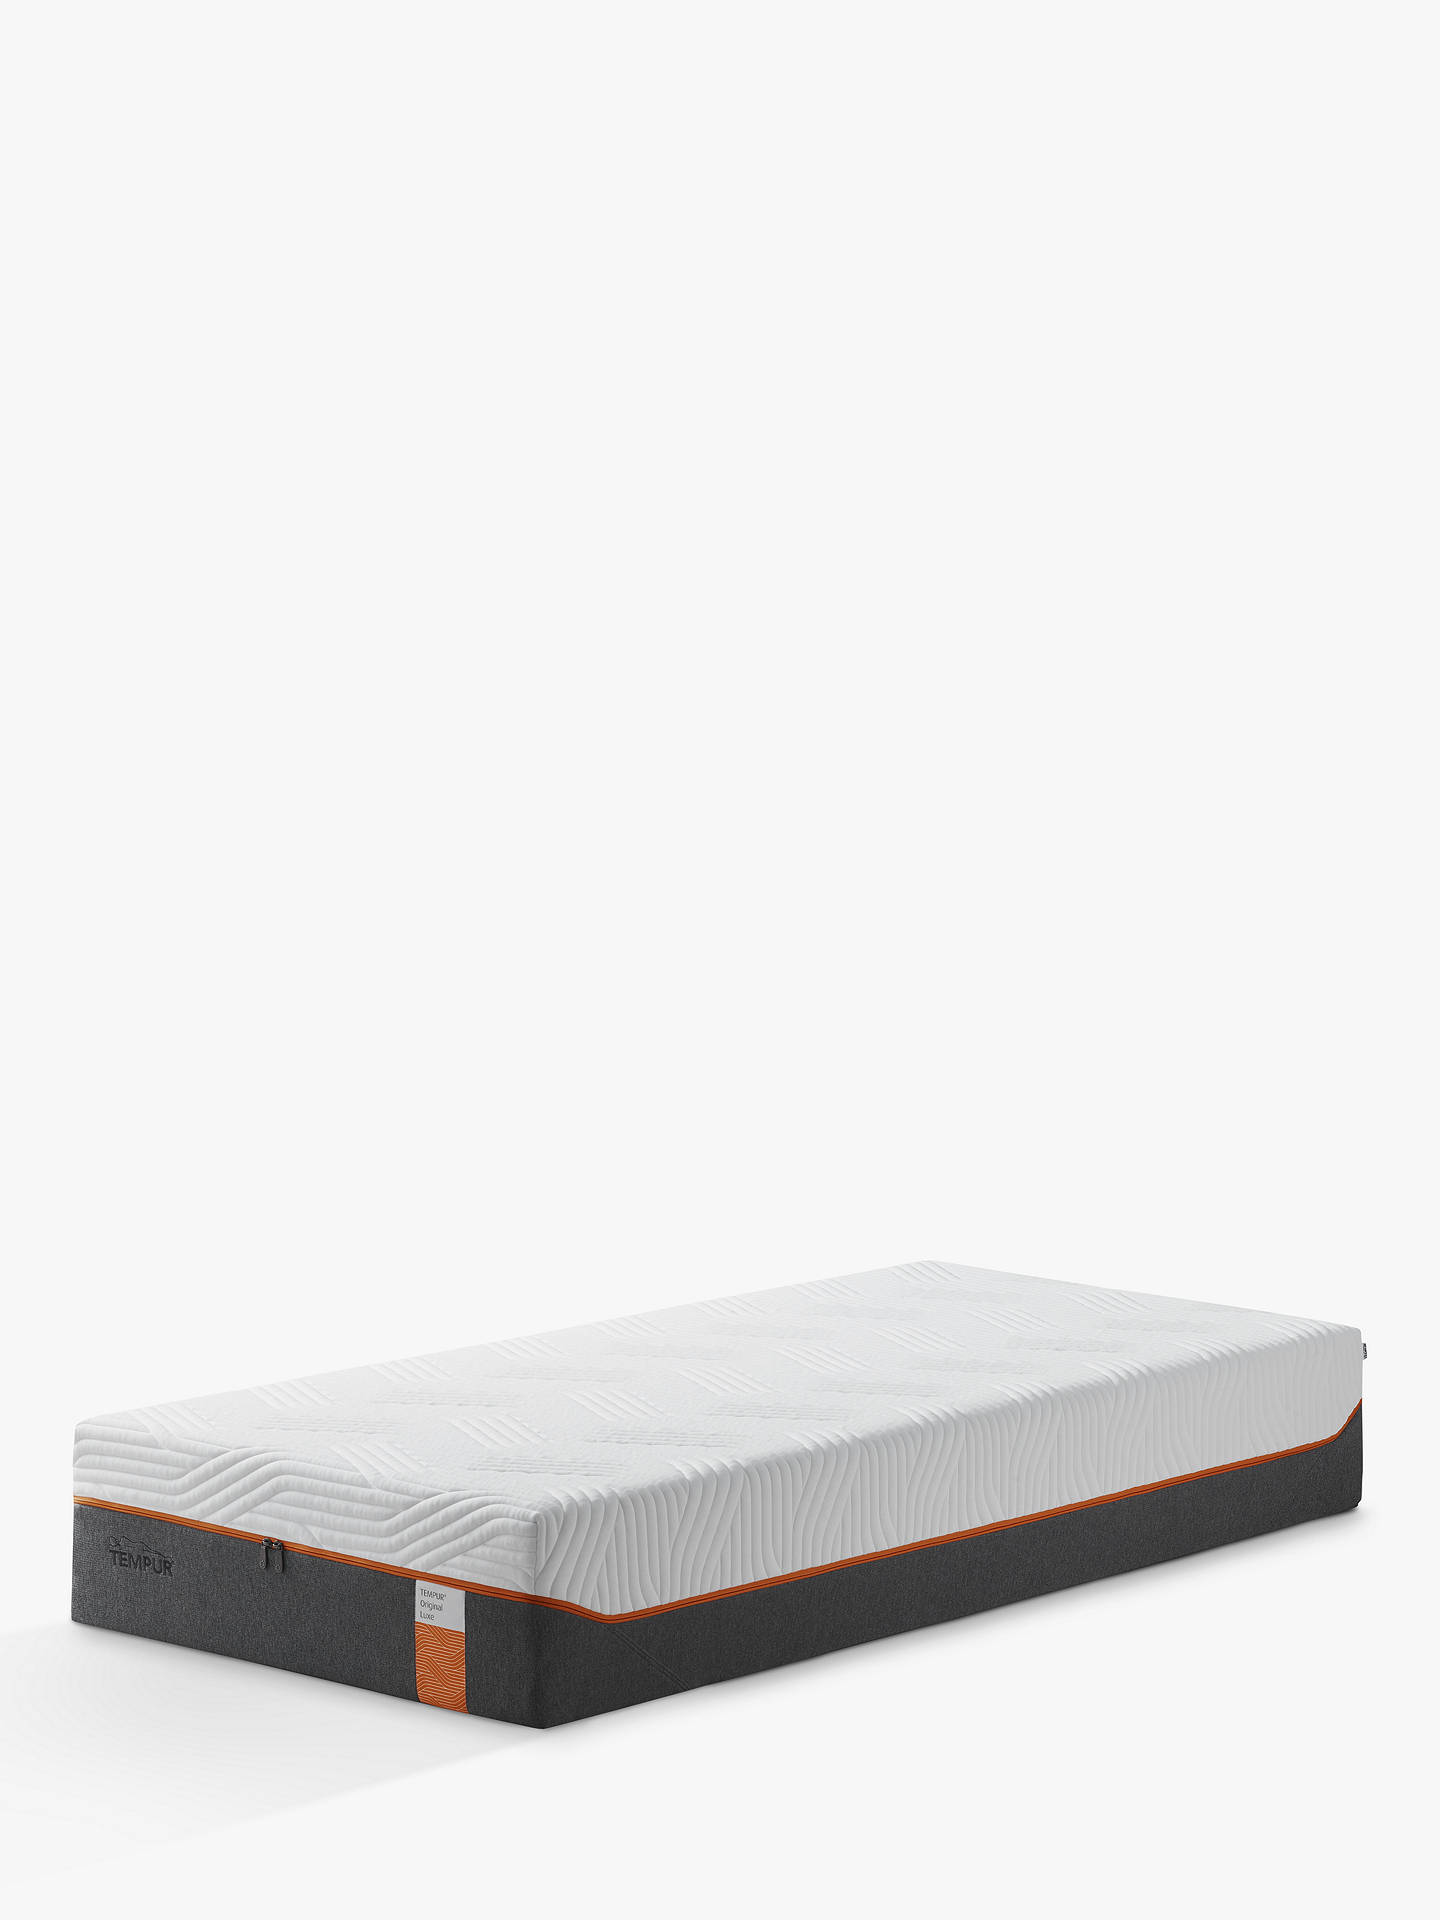 Buy Tempur Original Luxe Memory Foam Mattress, Medium Tension, Small Single Online at johnlewis.com